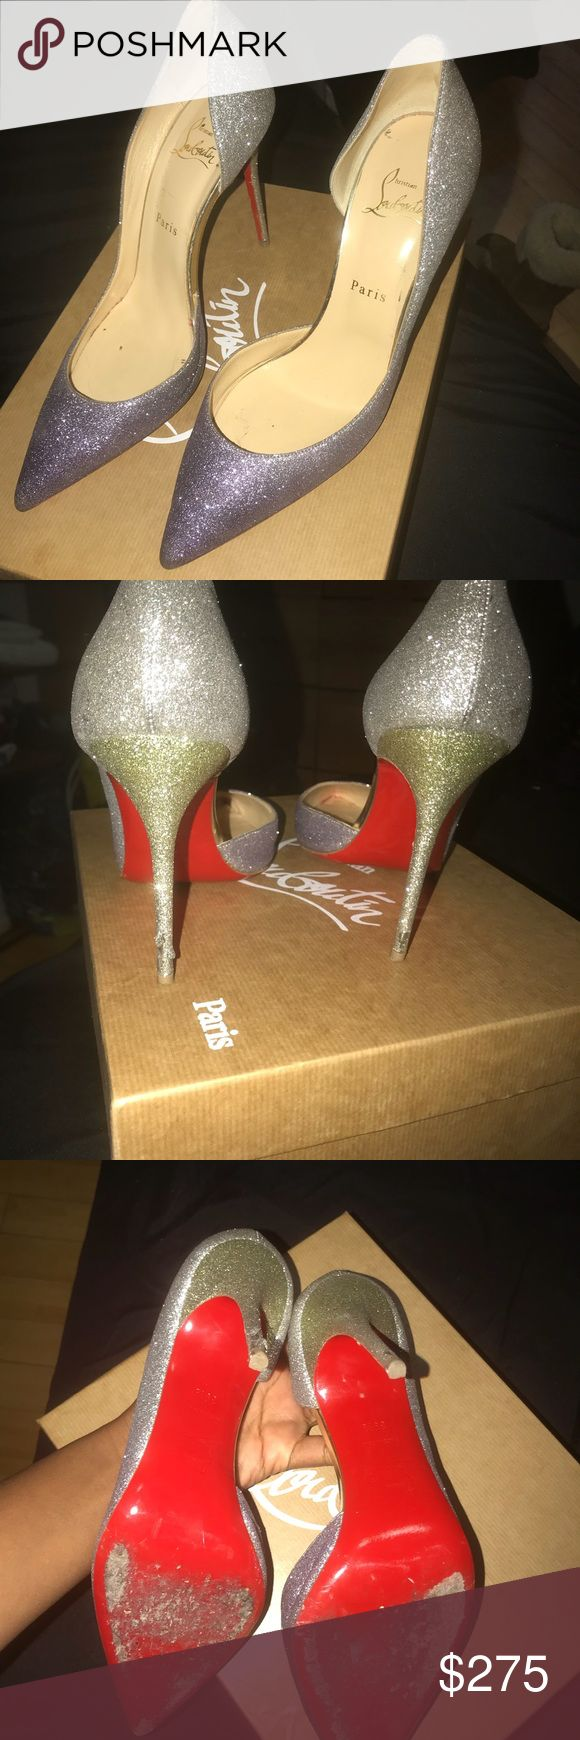 Christian Loubiton Shoes, Sparkle Size 39.5 Christian Loubiton Shoes, Sparkle Size 39.5!  Has been worn before but still in Good condition! Available for PICK UP also! ONLY ACCEPTING PAYPAL ( will send invoice ), or CASH APP! Will ship overnight fedex for free.. refunds are acceptable if your not satisfied! Christian Louboutin Shoes Heels